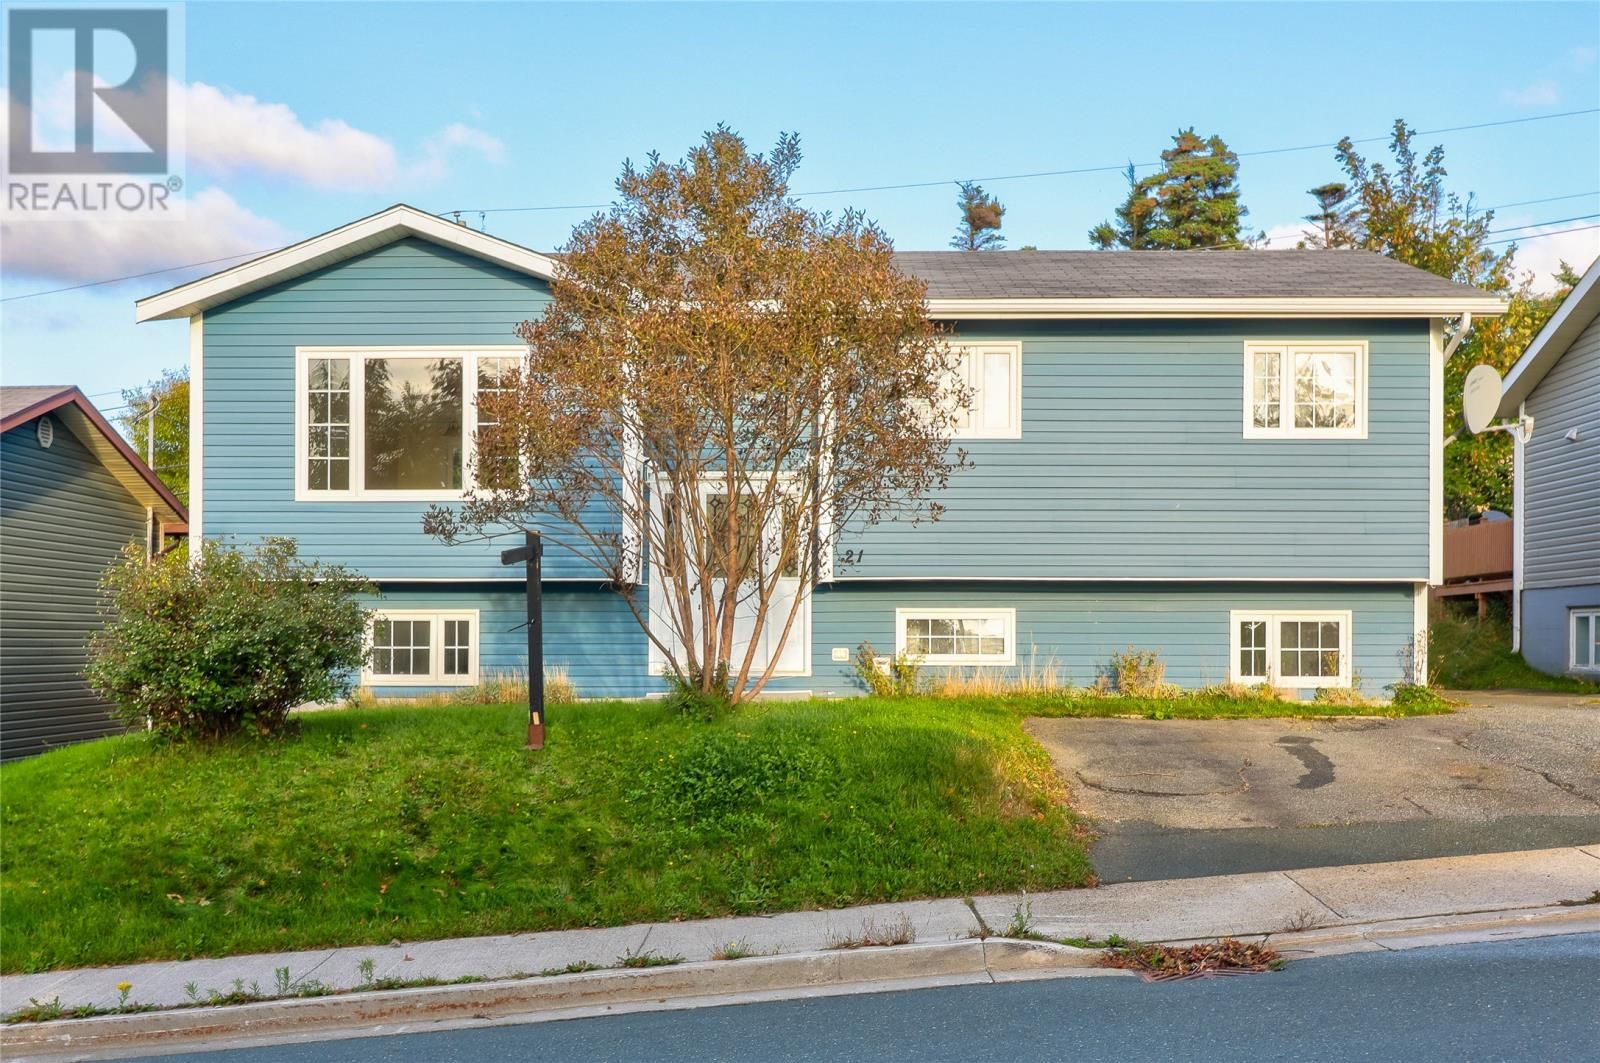 Main Photo: 21 Kerry Avenue in Conception Bay South: House for sale : MLS®# 1237719